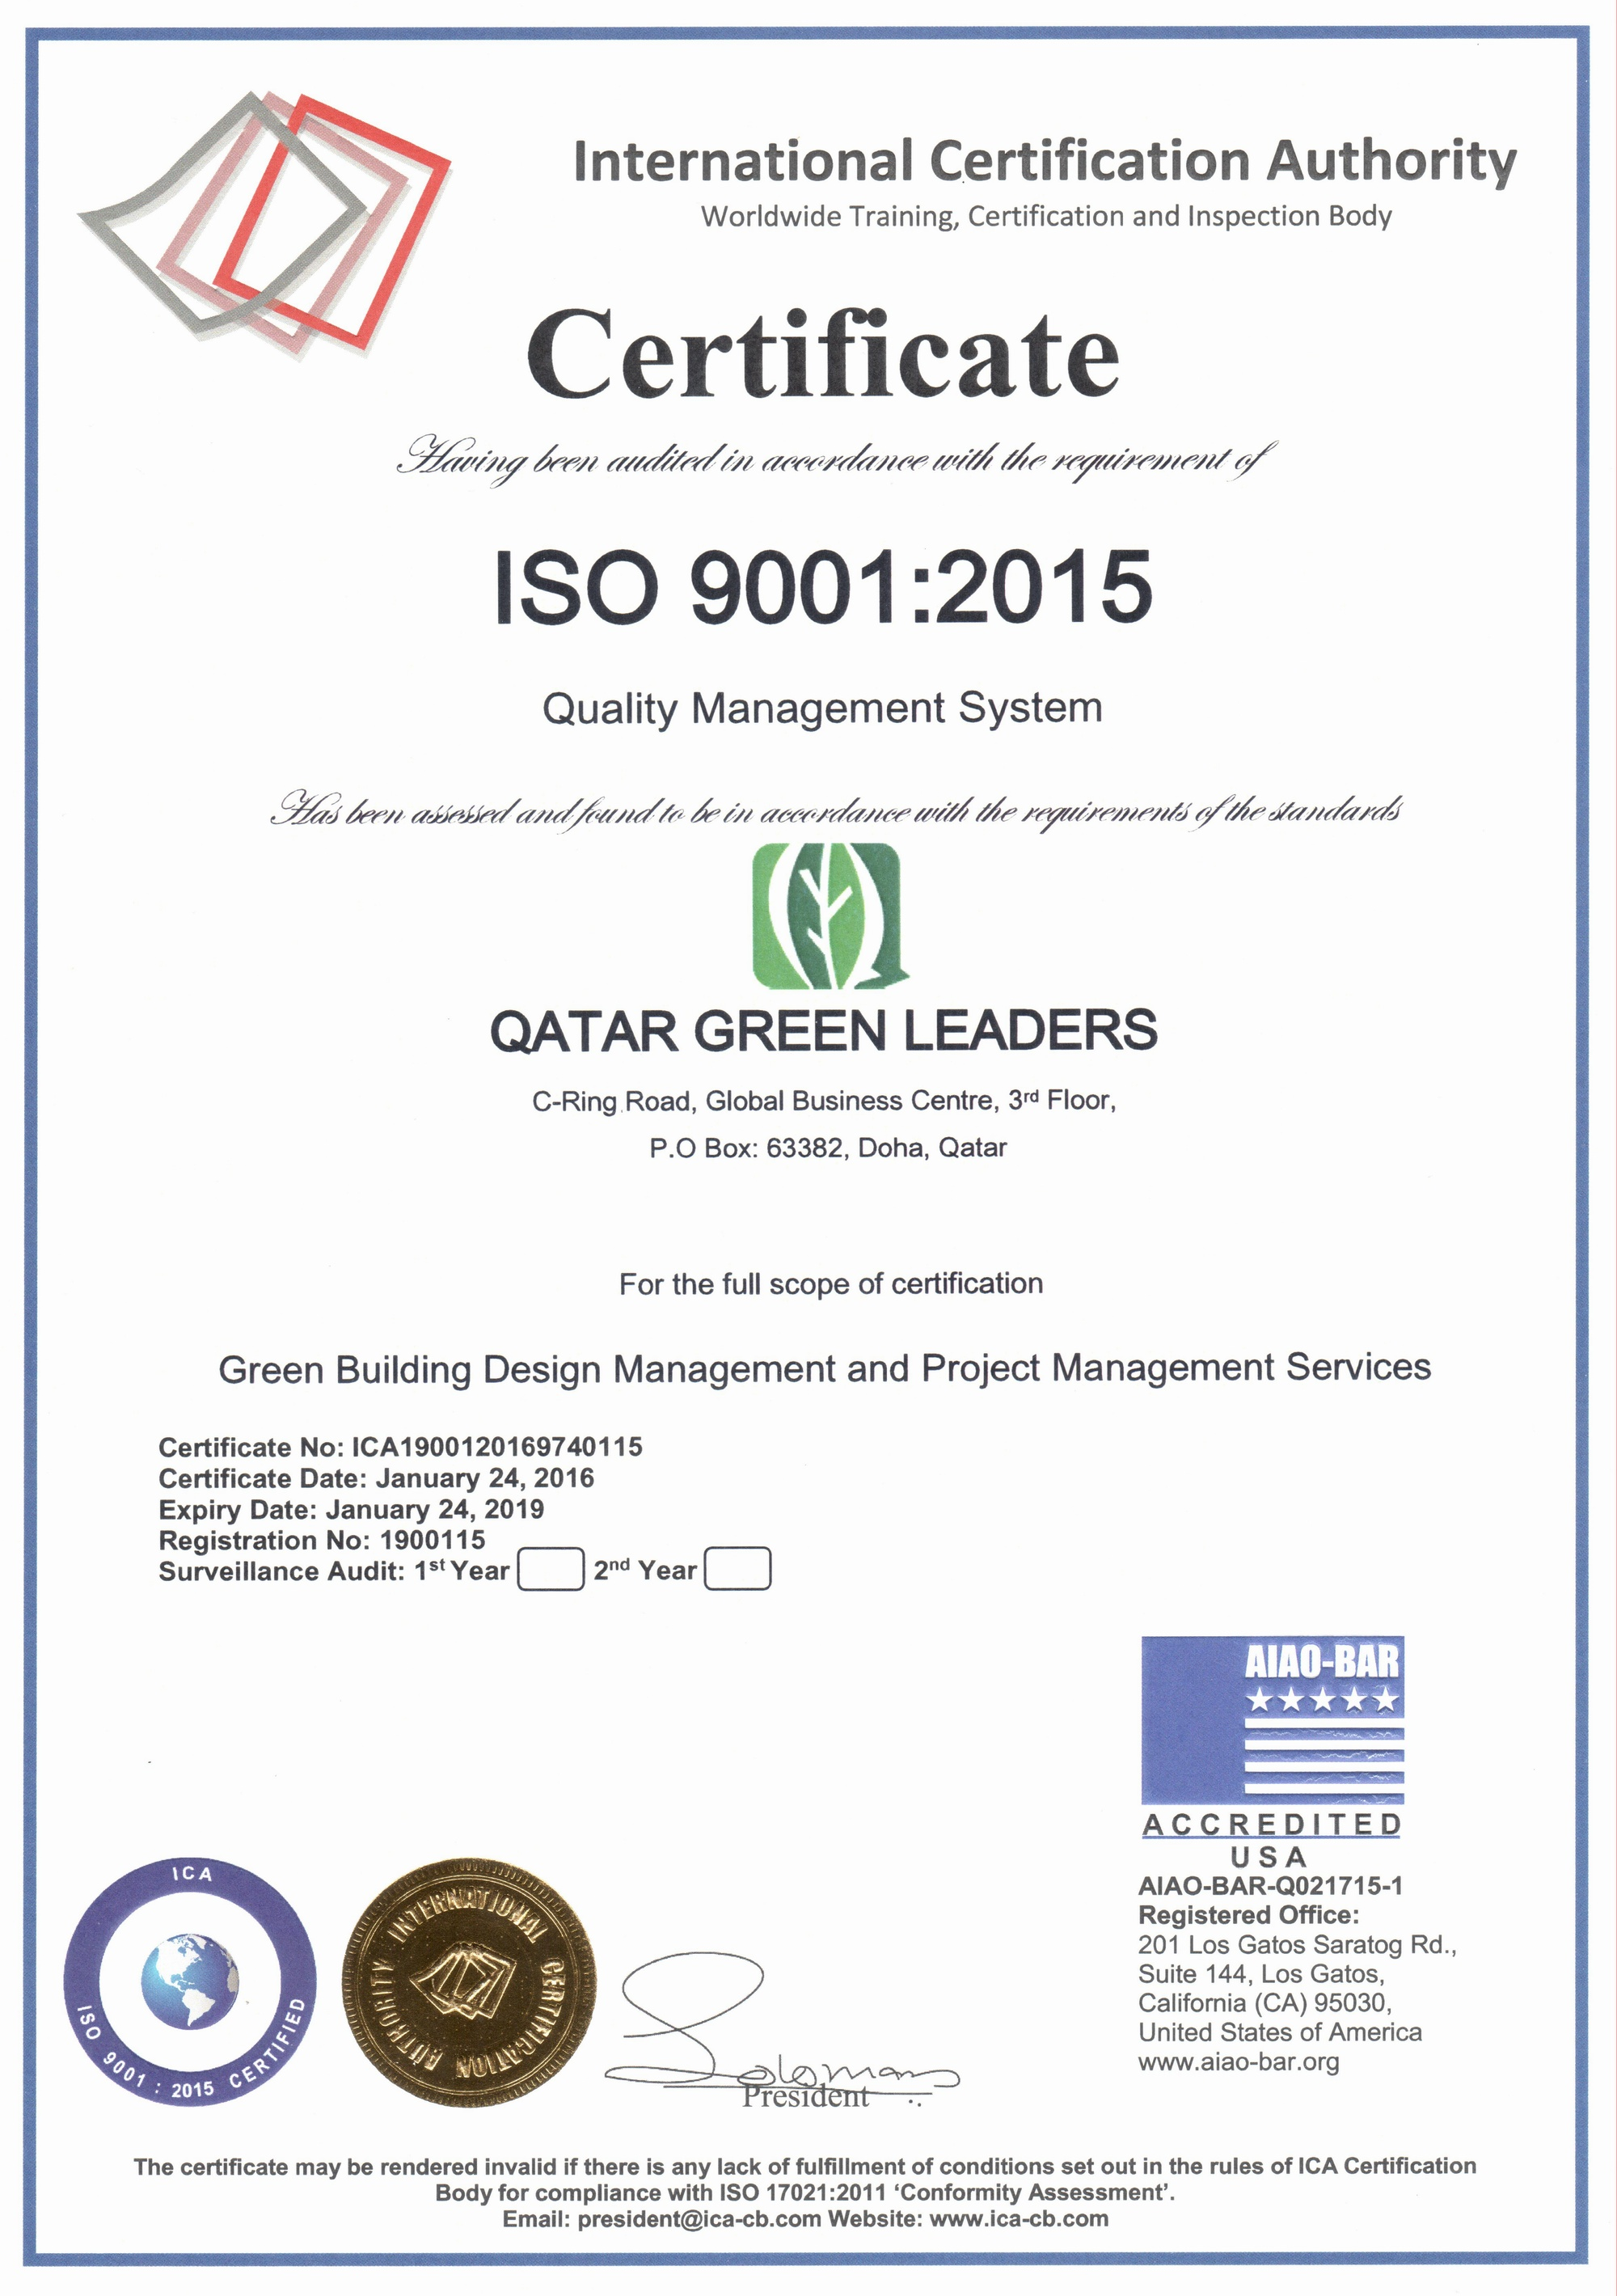 Qatar Green Leaders is an ISO-9001:2015 Certified Company!